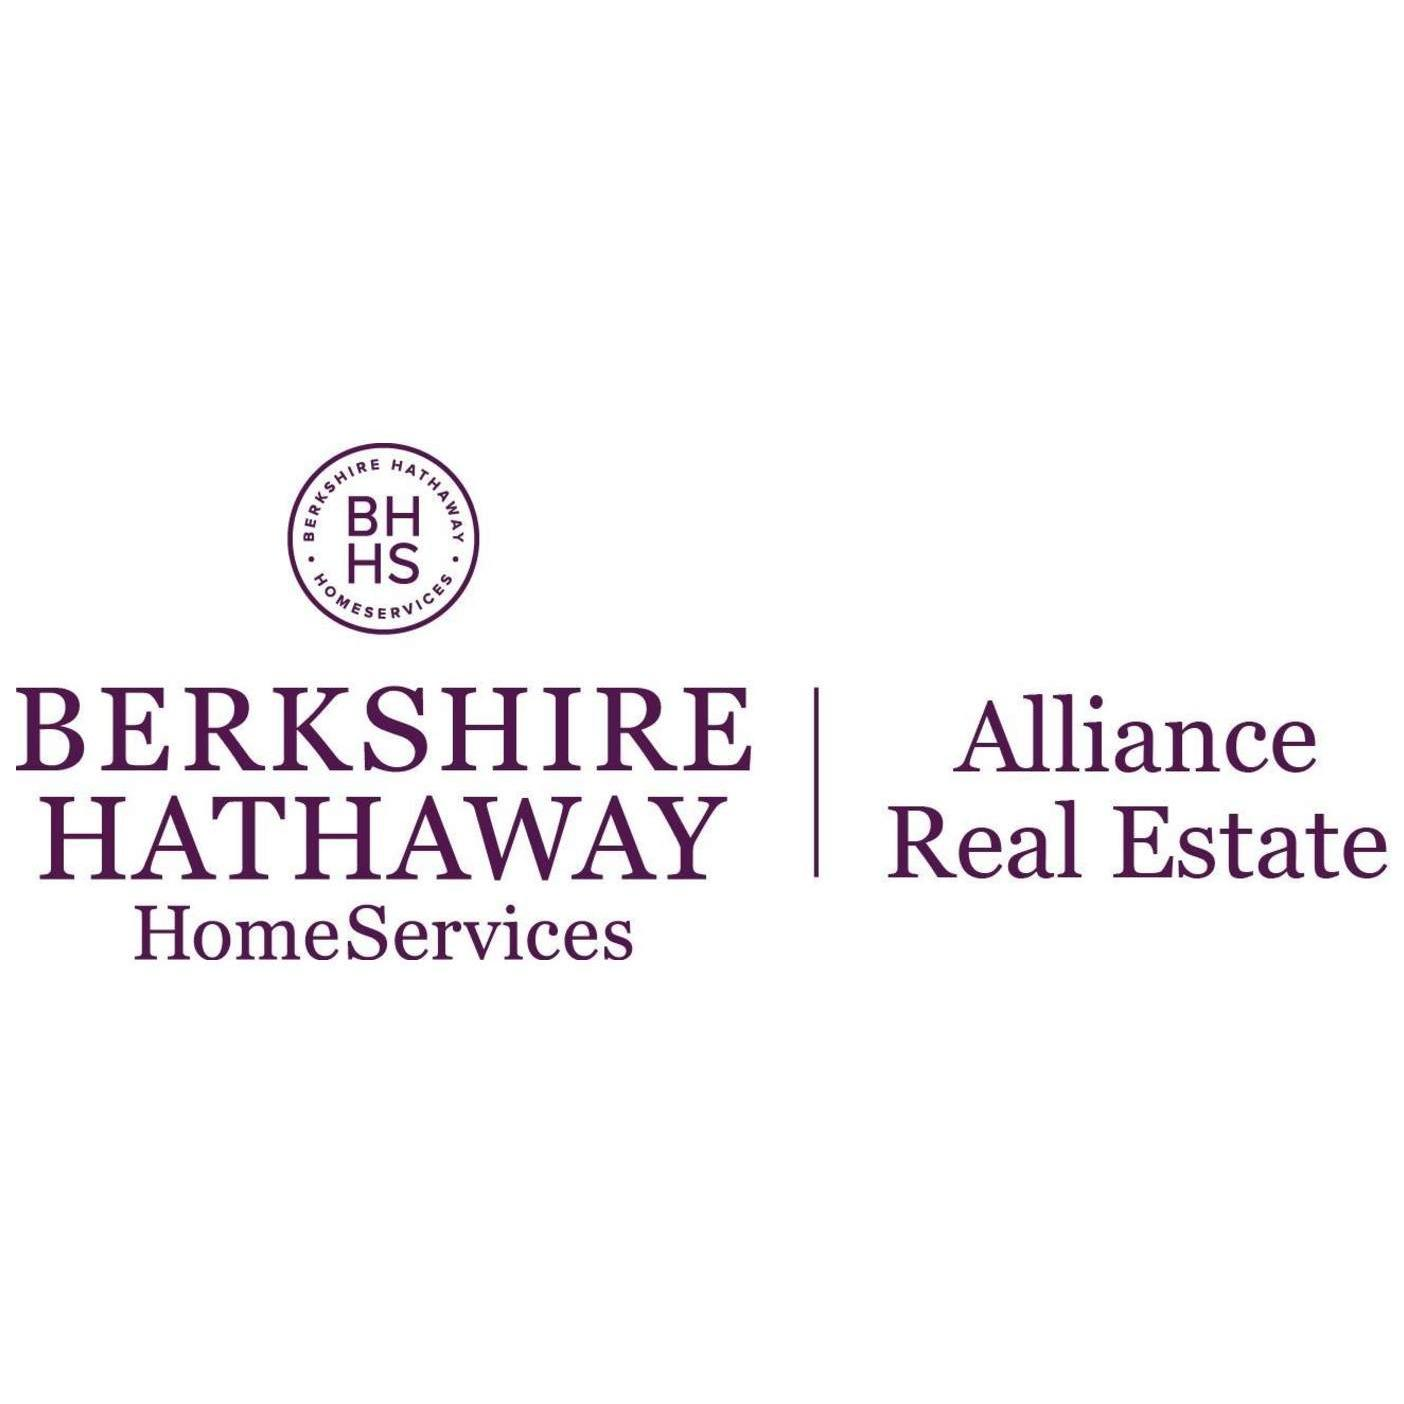 ButlerFelsherGroup | Berkshire Hathaway HomeServices Alliance Real Estate